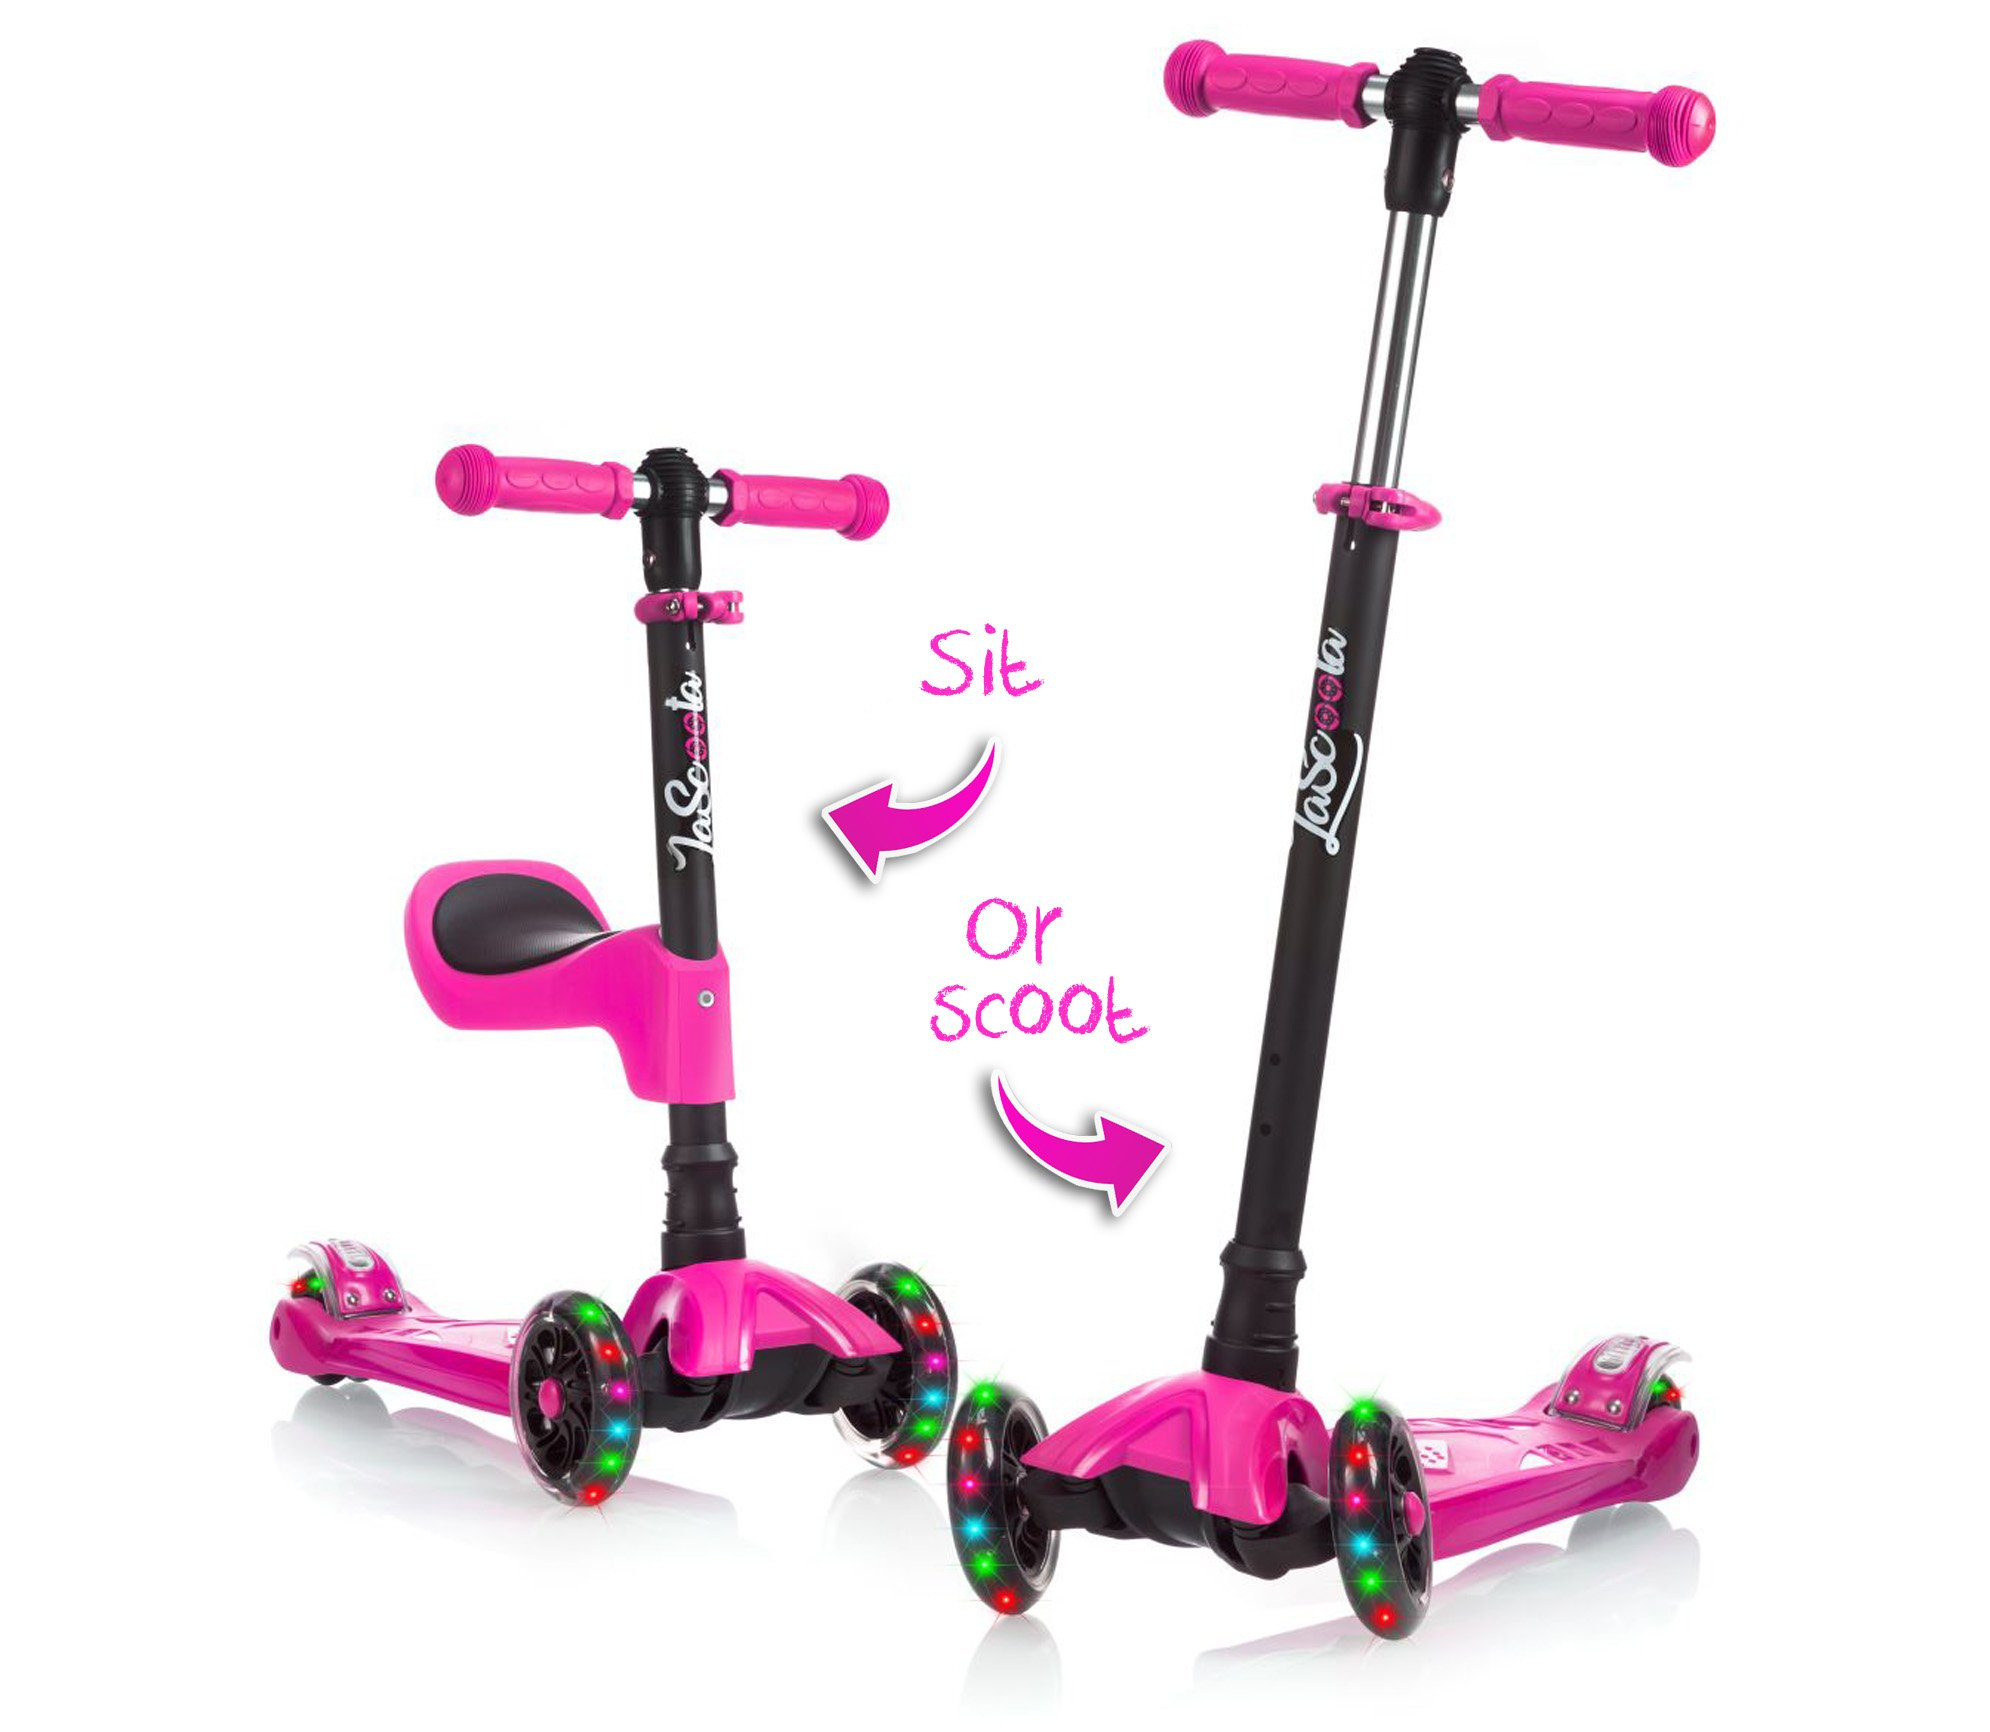 LaScoota 2-in-1 Kick Scooter with Removable Seat great for kids & toddlers Girls or boys – Adjustable Height w/Extra-wide Deck PU Flashing Wheels for Children from 2 to 14 Year-Old (Pink) by LaScoota (Image #1)